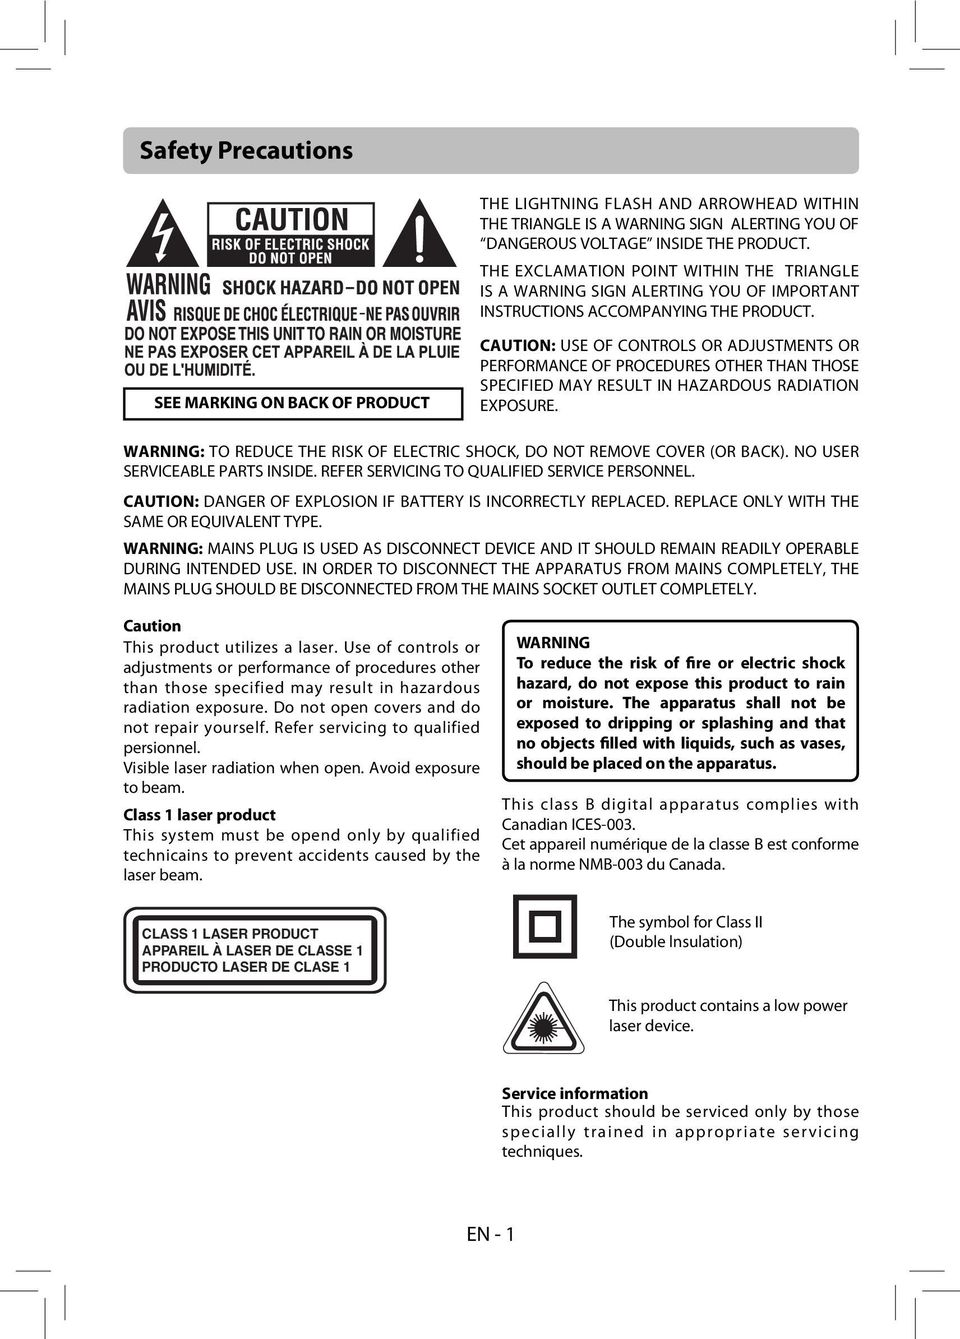 SEE MARKING ON BACK OF PRODUCT CAUTION: USE OF CONTROLS OR ADJUSTMENTS OR PERFORMANCE OF PROCEDURES OTHER THAN THOSE SPECIFIED MAY RESULT IN HAZARDOUS RADIATION EXPOSURE.